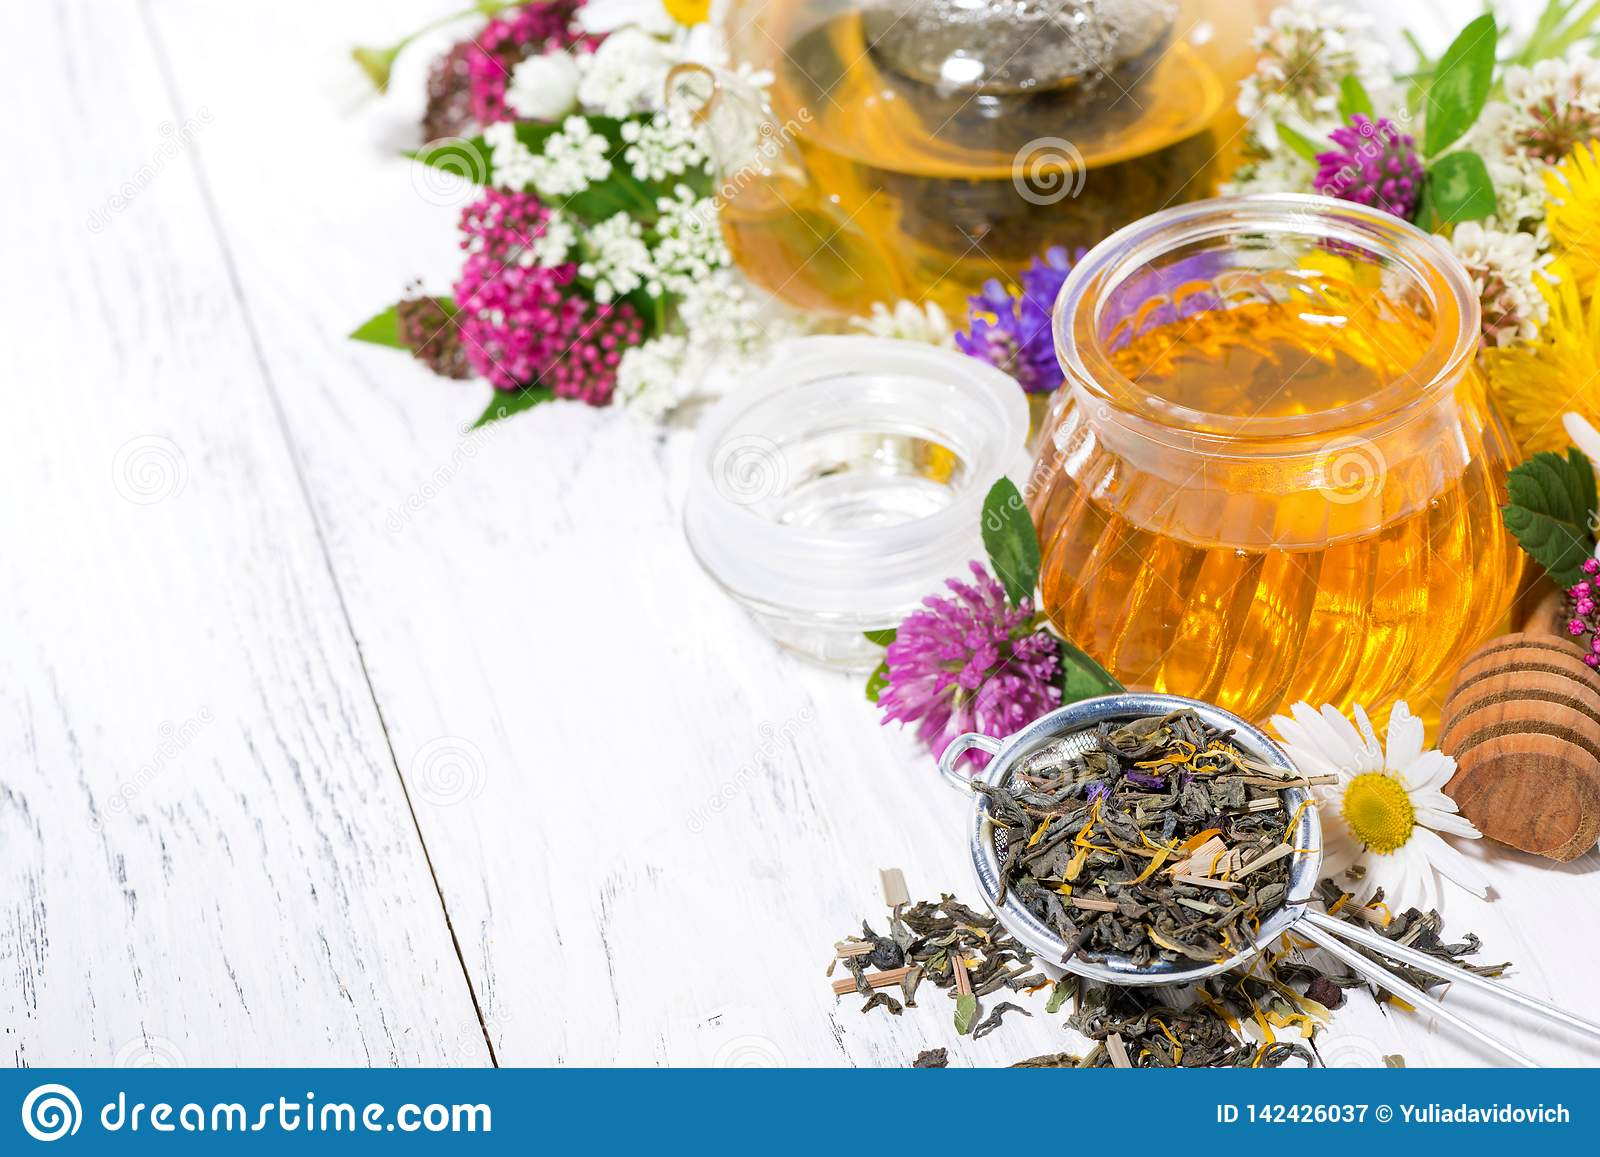 Fresh flower honey, tea and ingredients on white background, top view